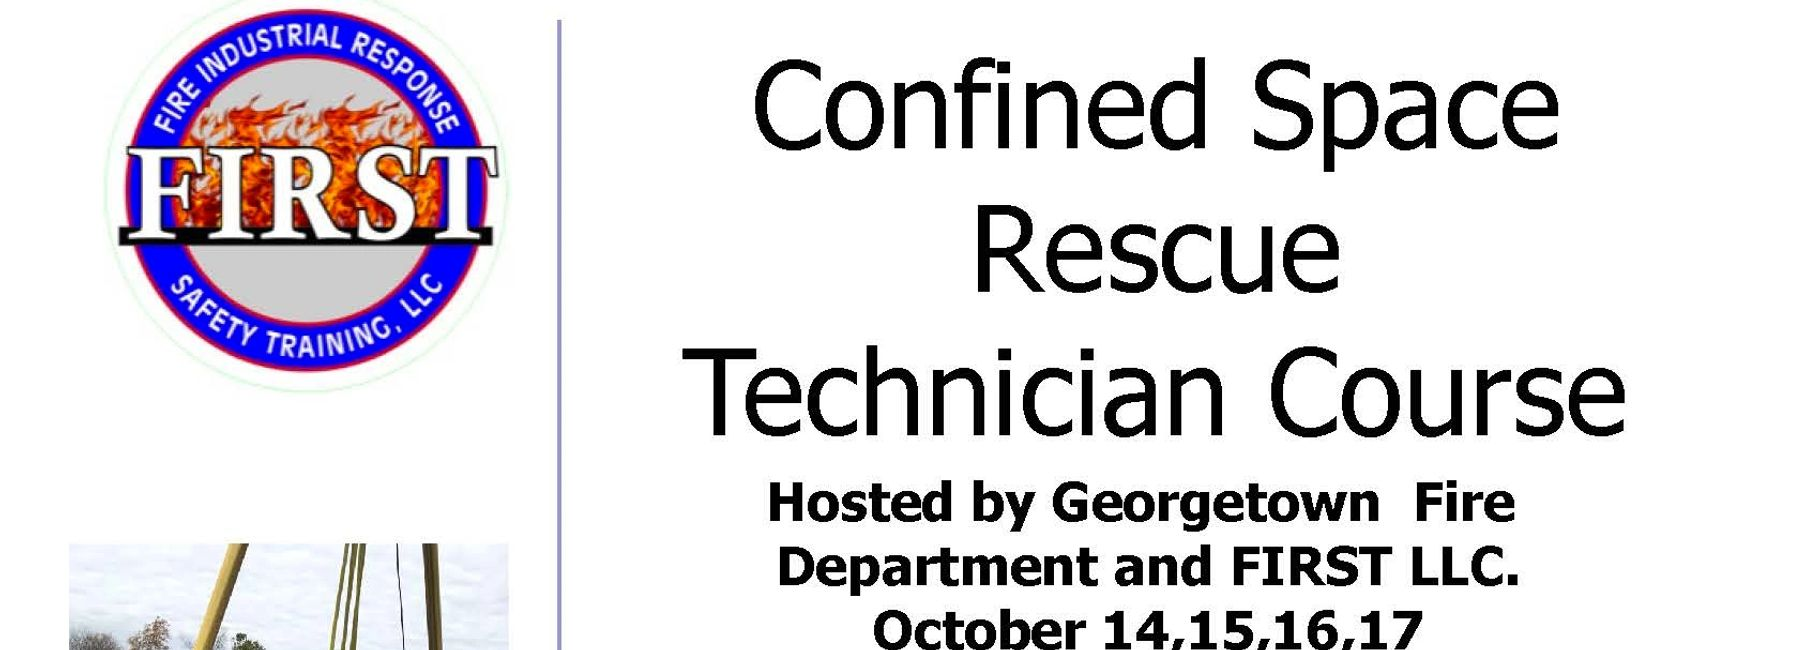 Firefighter rescue permit required confined space  OSHA georgetown kentucky lexington kentucky FIRST